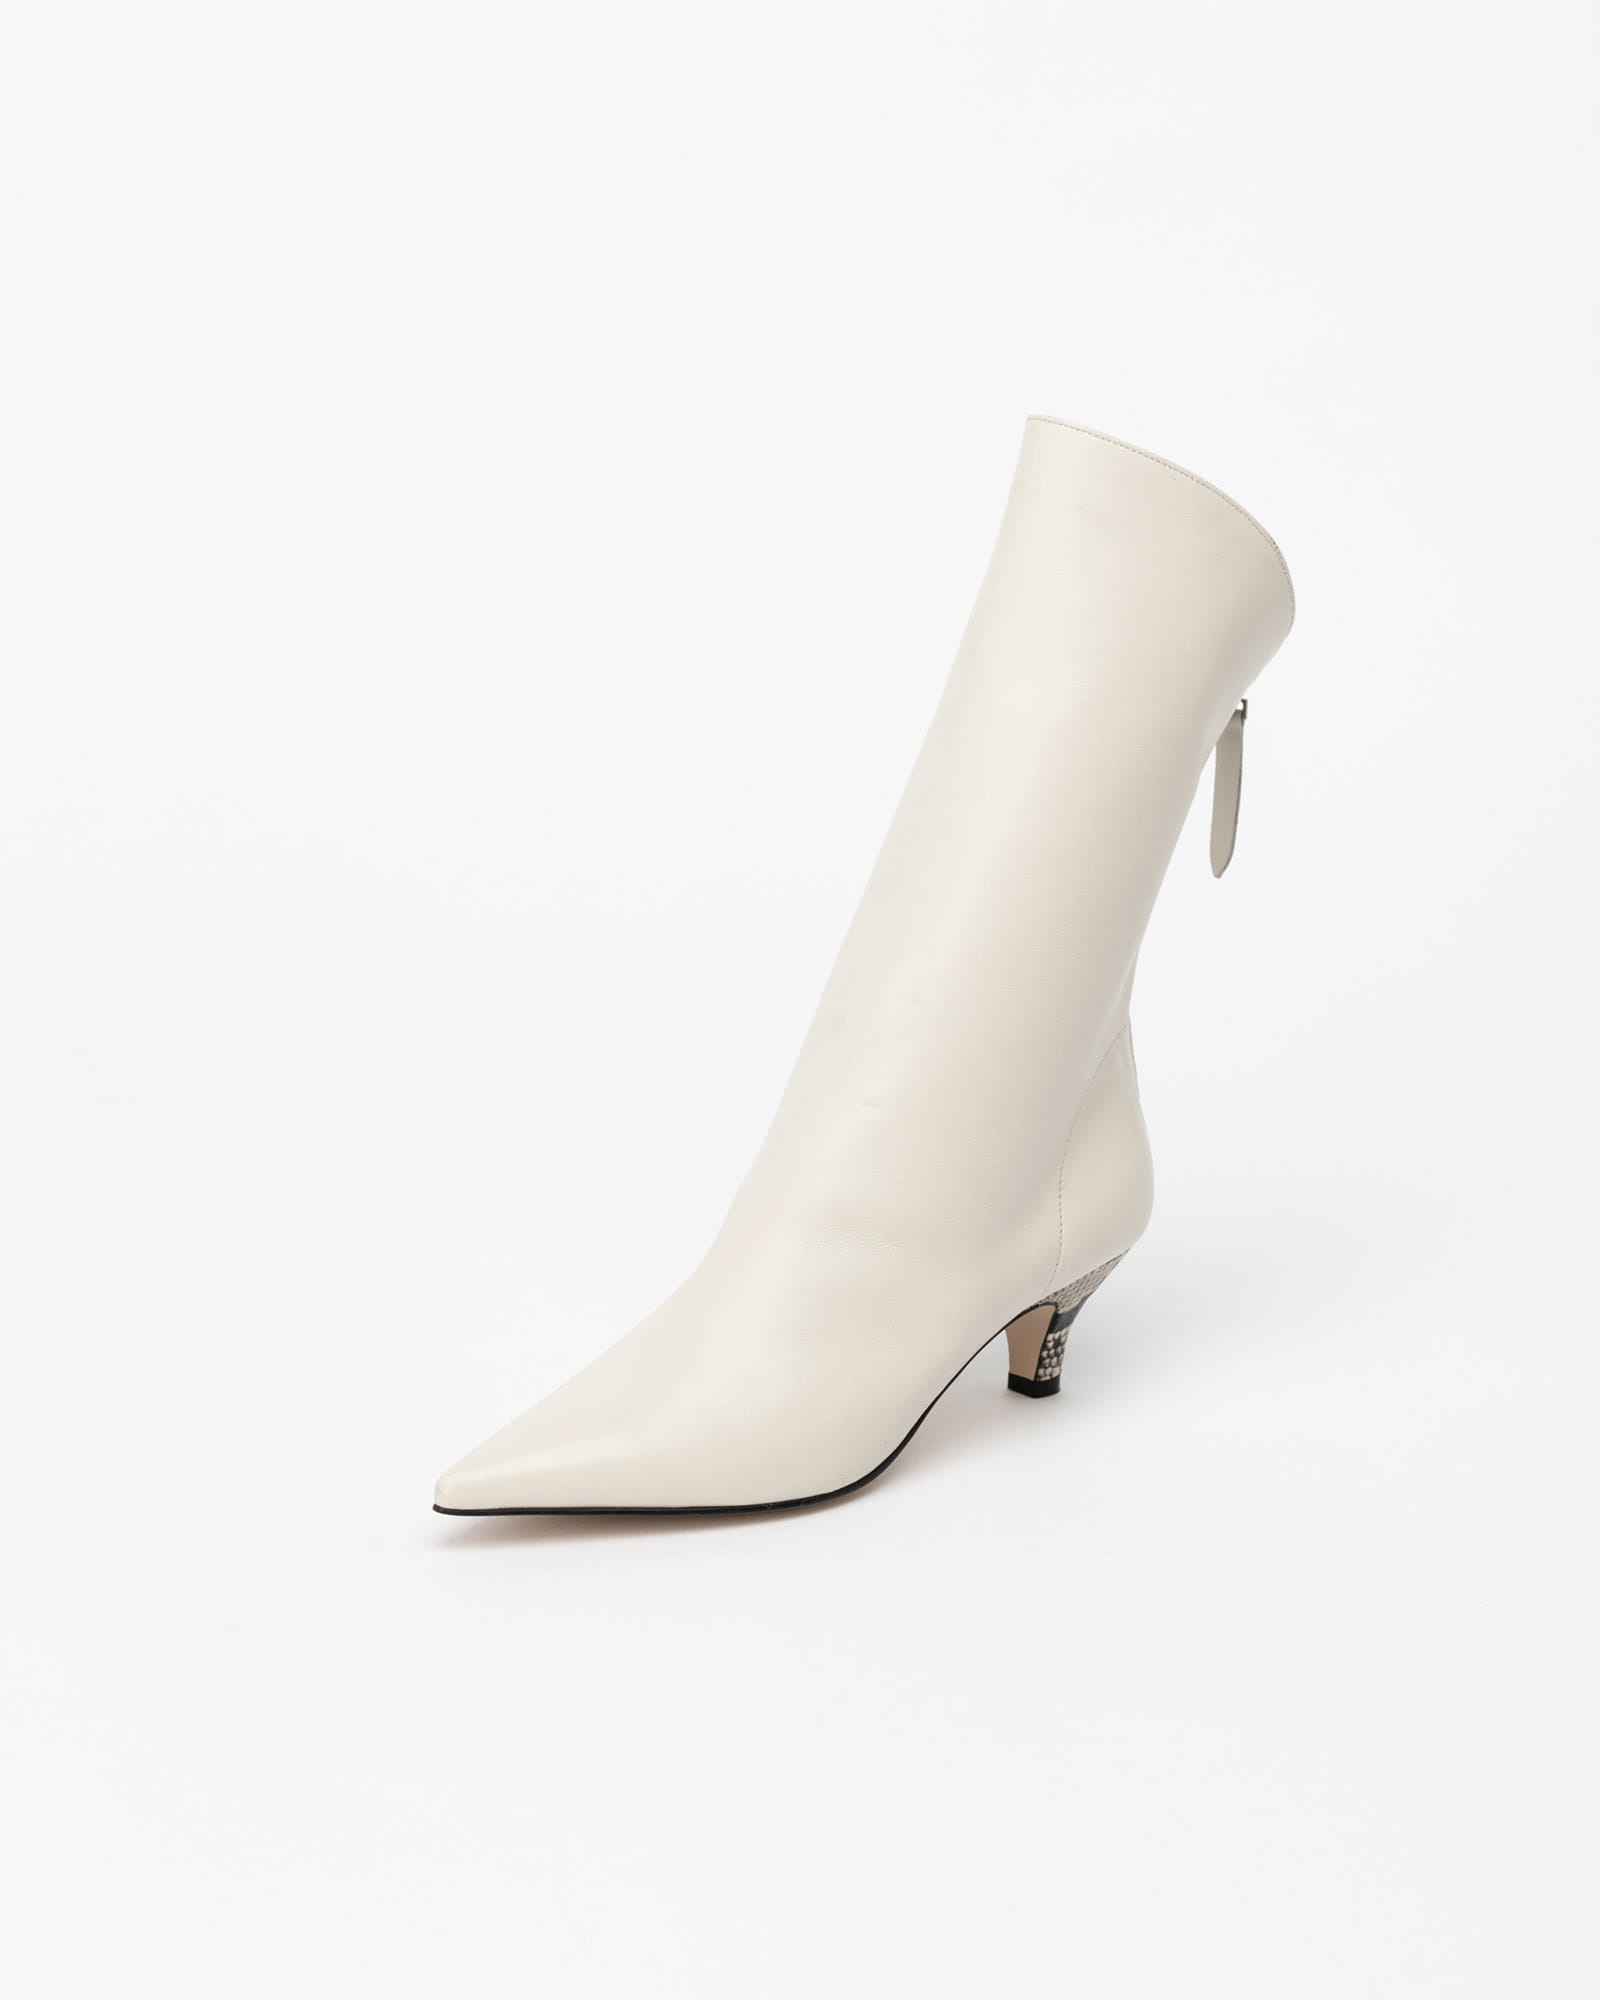 Anglia Soft Boots in Ivory